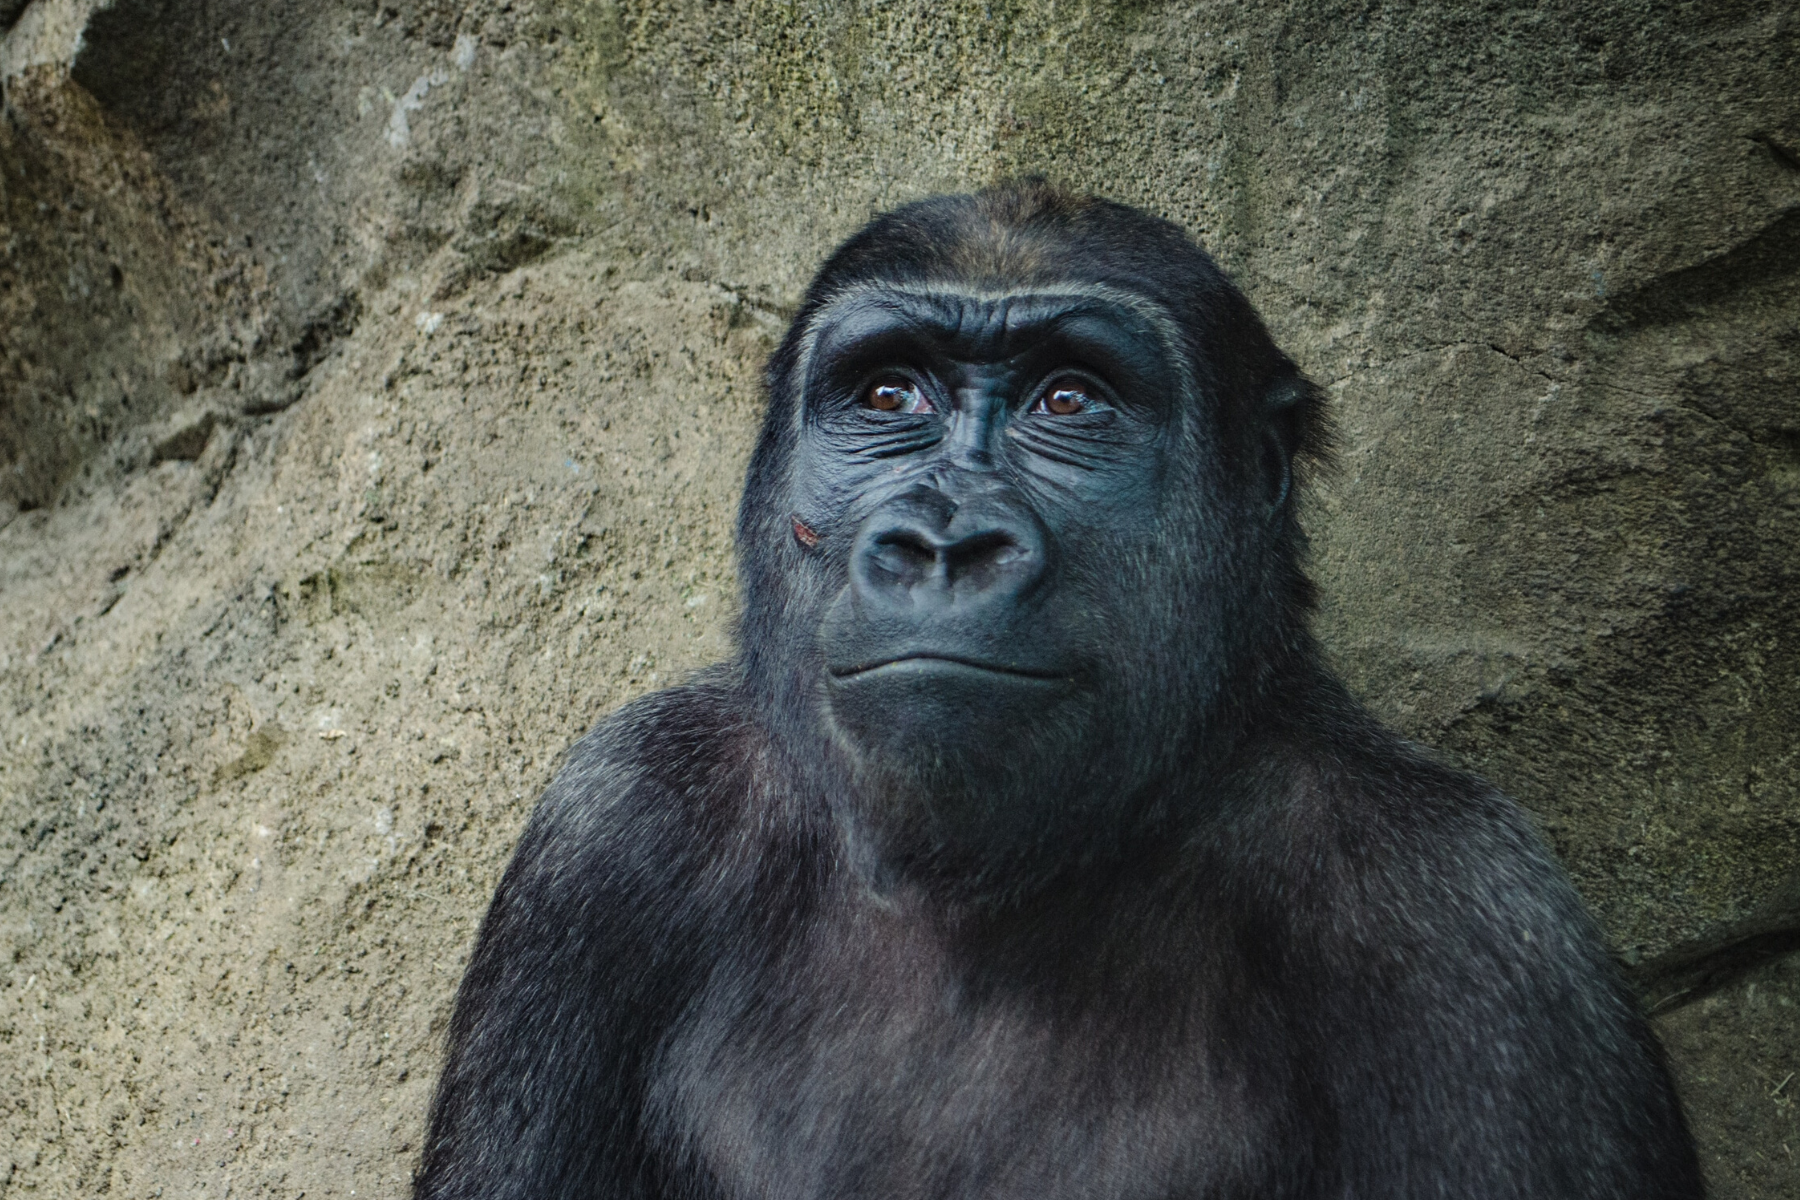 Black gorilla sitting in front of rock smiling and looking up